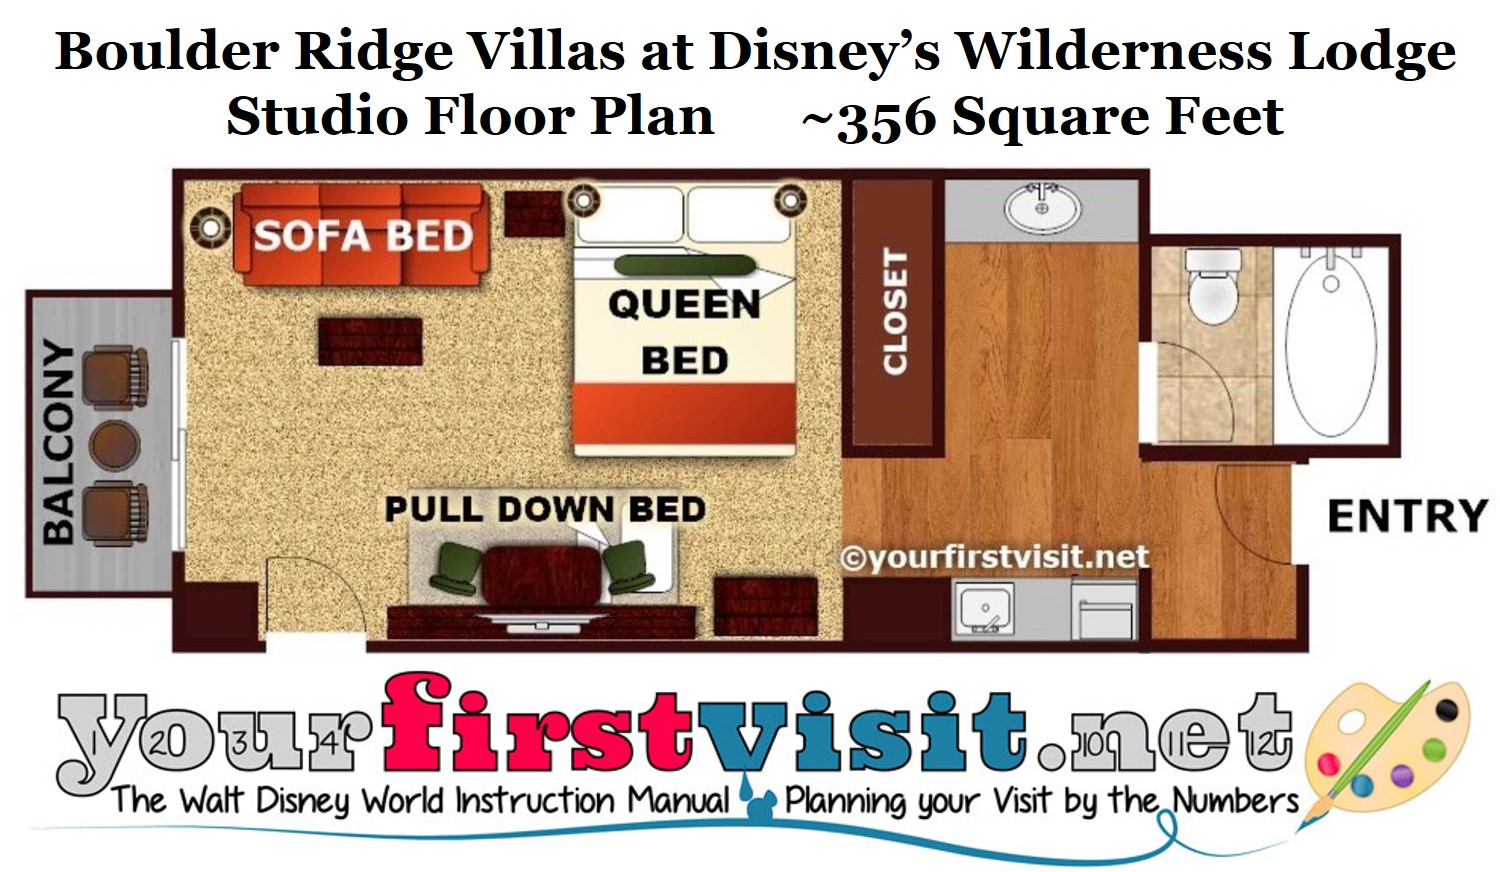 villa ridge chat rooms Find your favorite flooring at straatmann's carpet service in villa ridge, missouri shaw flooring for every room and need in a variety of.